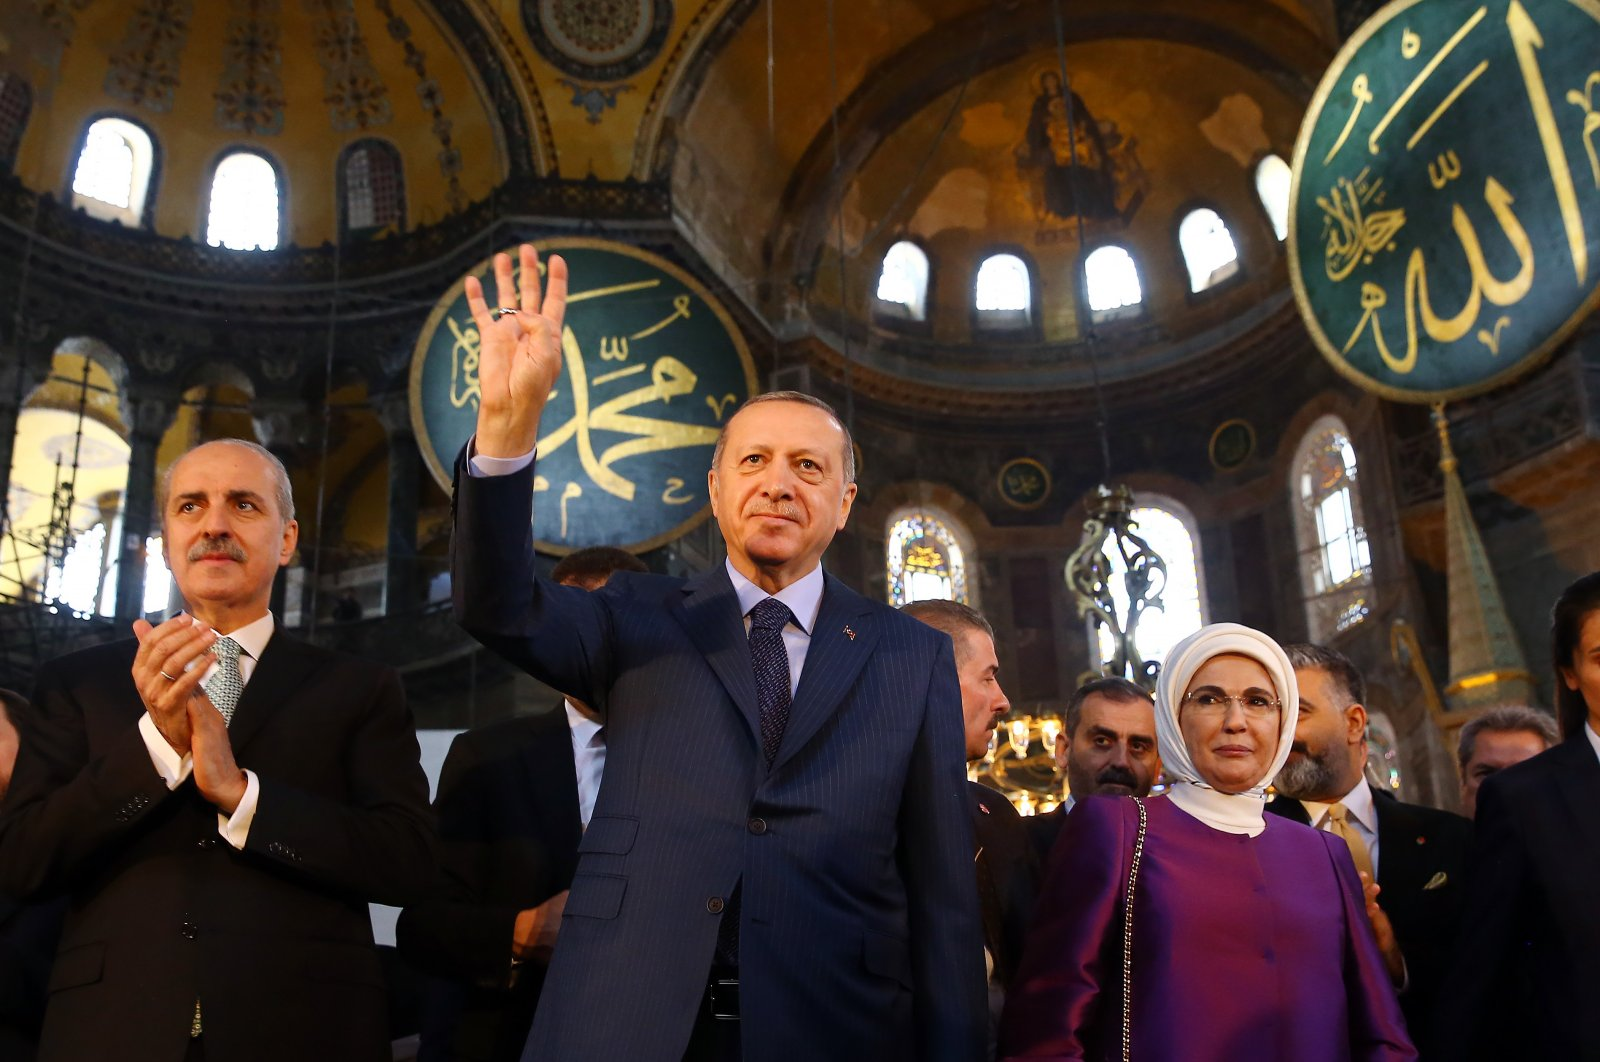 President Recep Tayyip Erdoğan gestures during a visit to Hagia Sophia, in Istanbul, Turkey, March 31, 2018. (AA Photo)